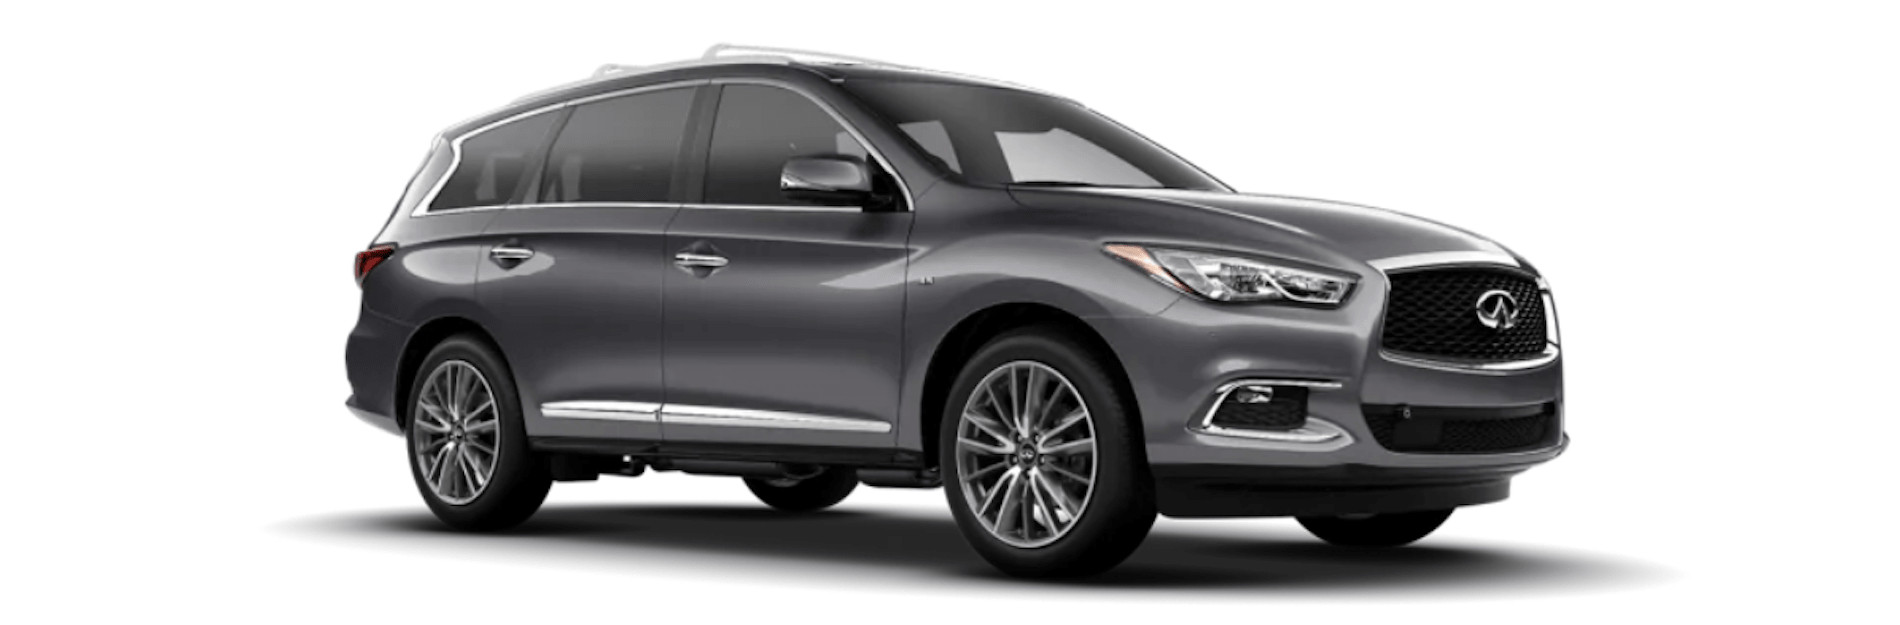 2020 INFINITI QX60 for sale in Mobile